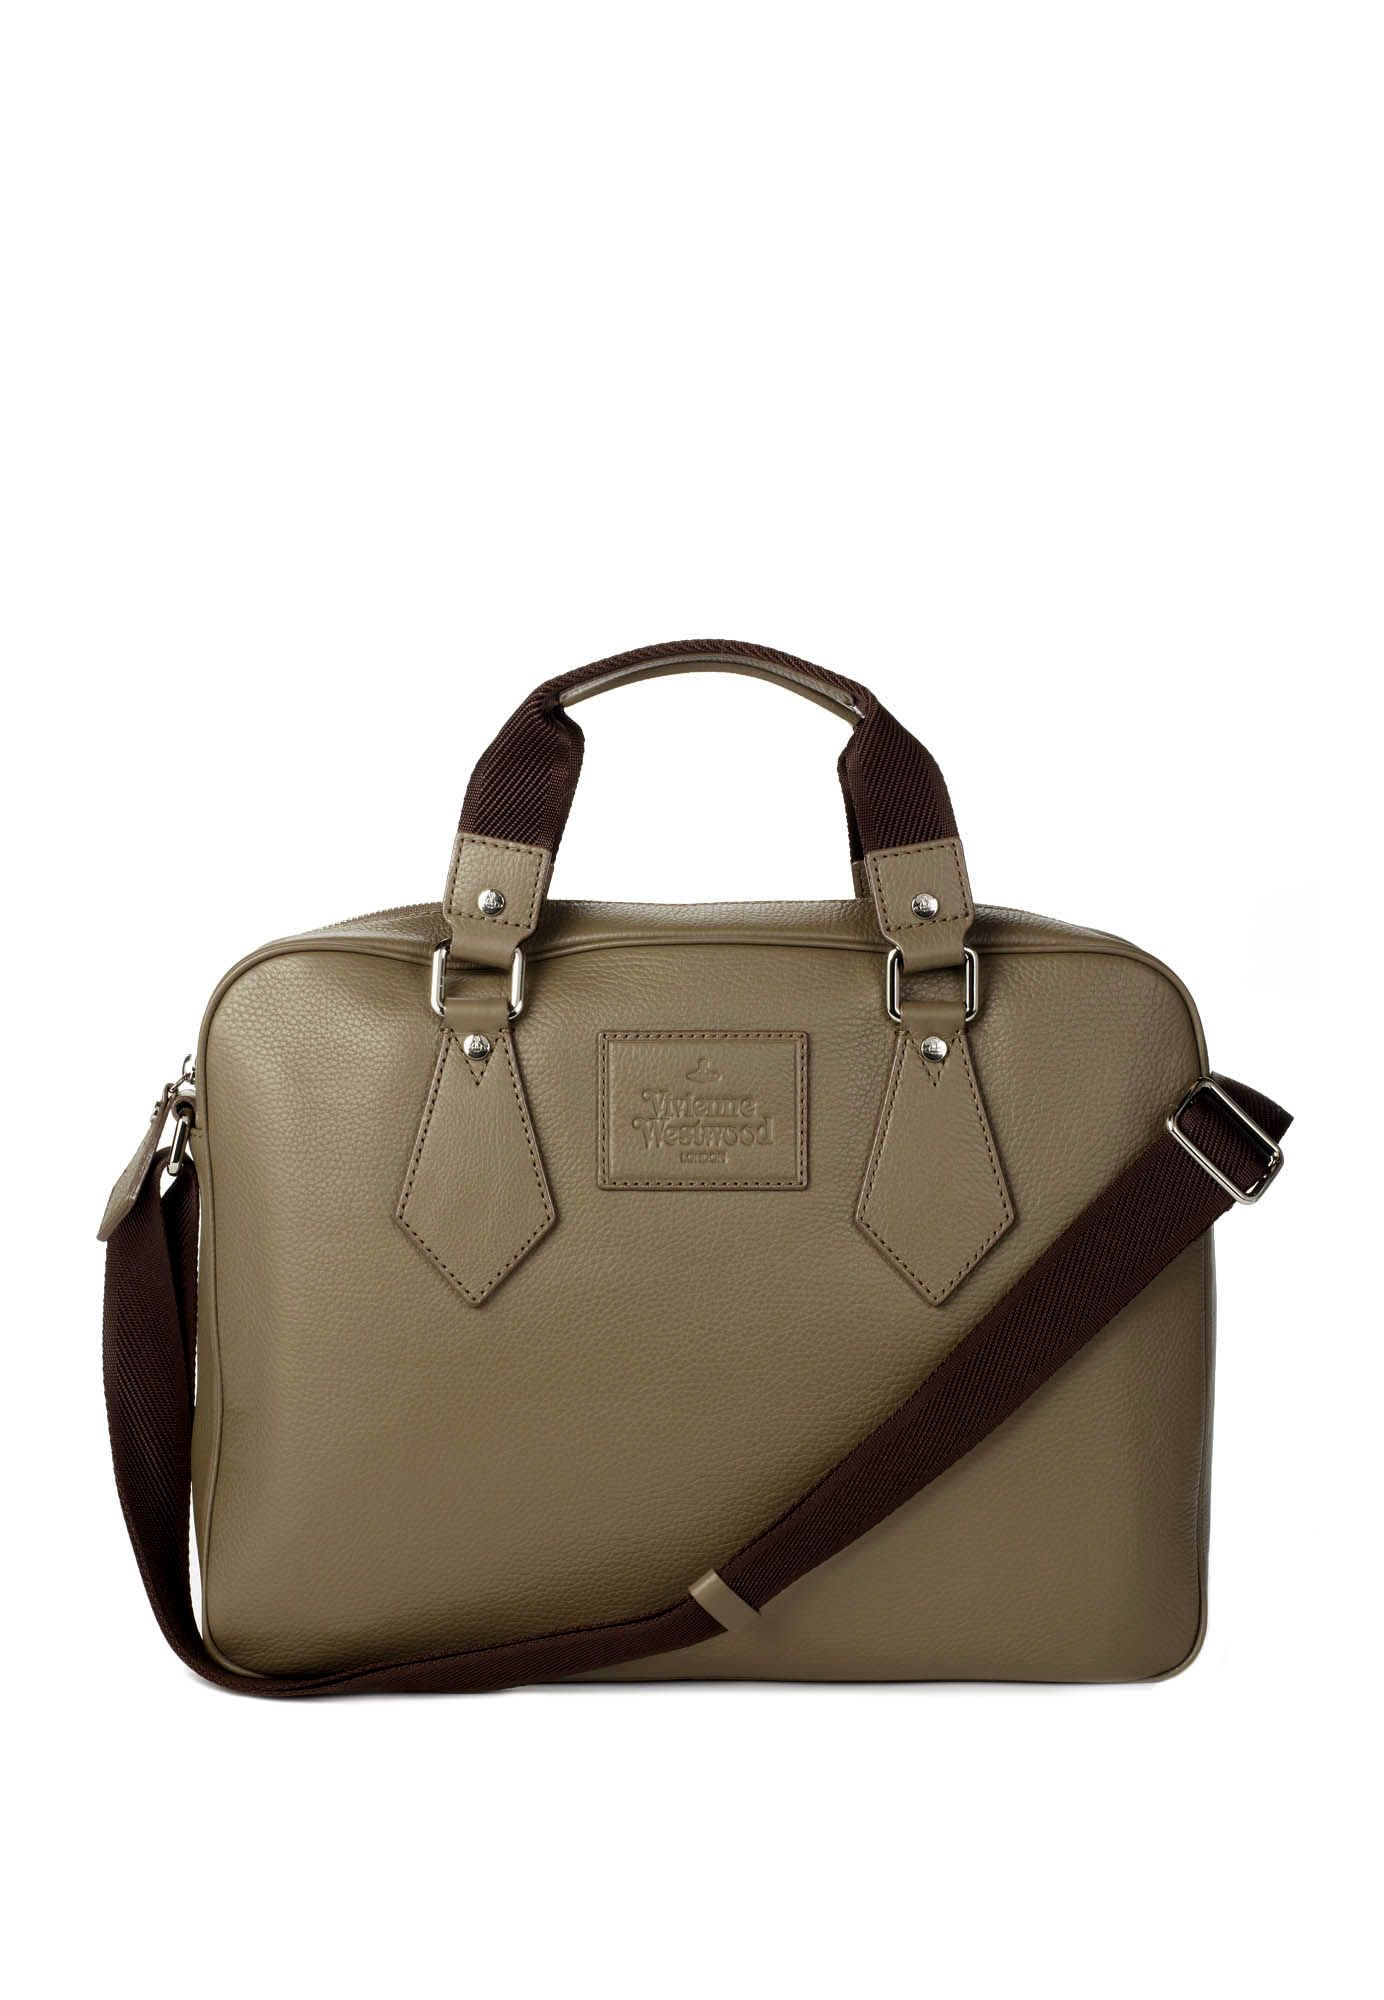 c649c17385b7 Man Leather BRIEFCASE - Taupe - by Vivienne Westwood